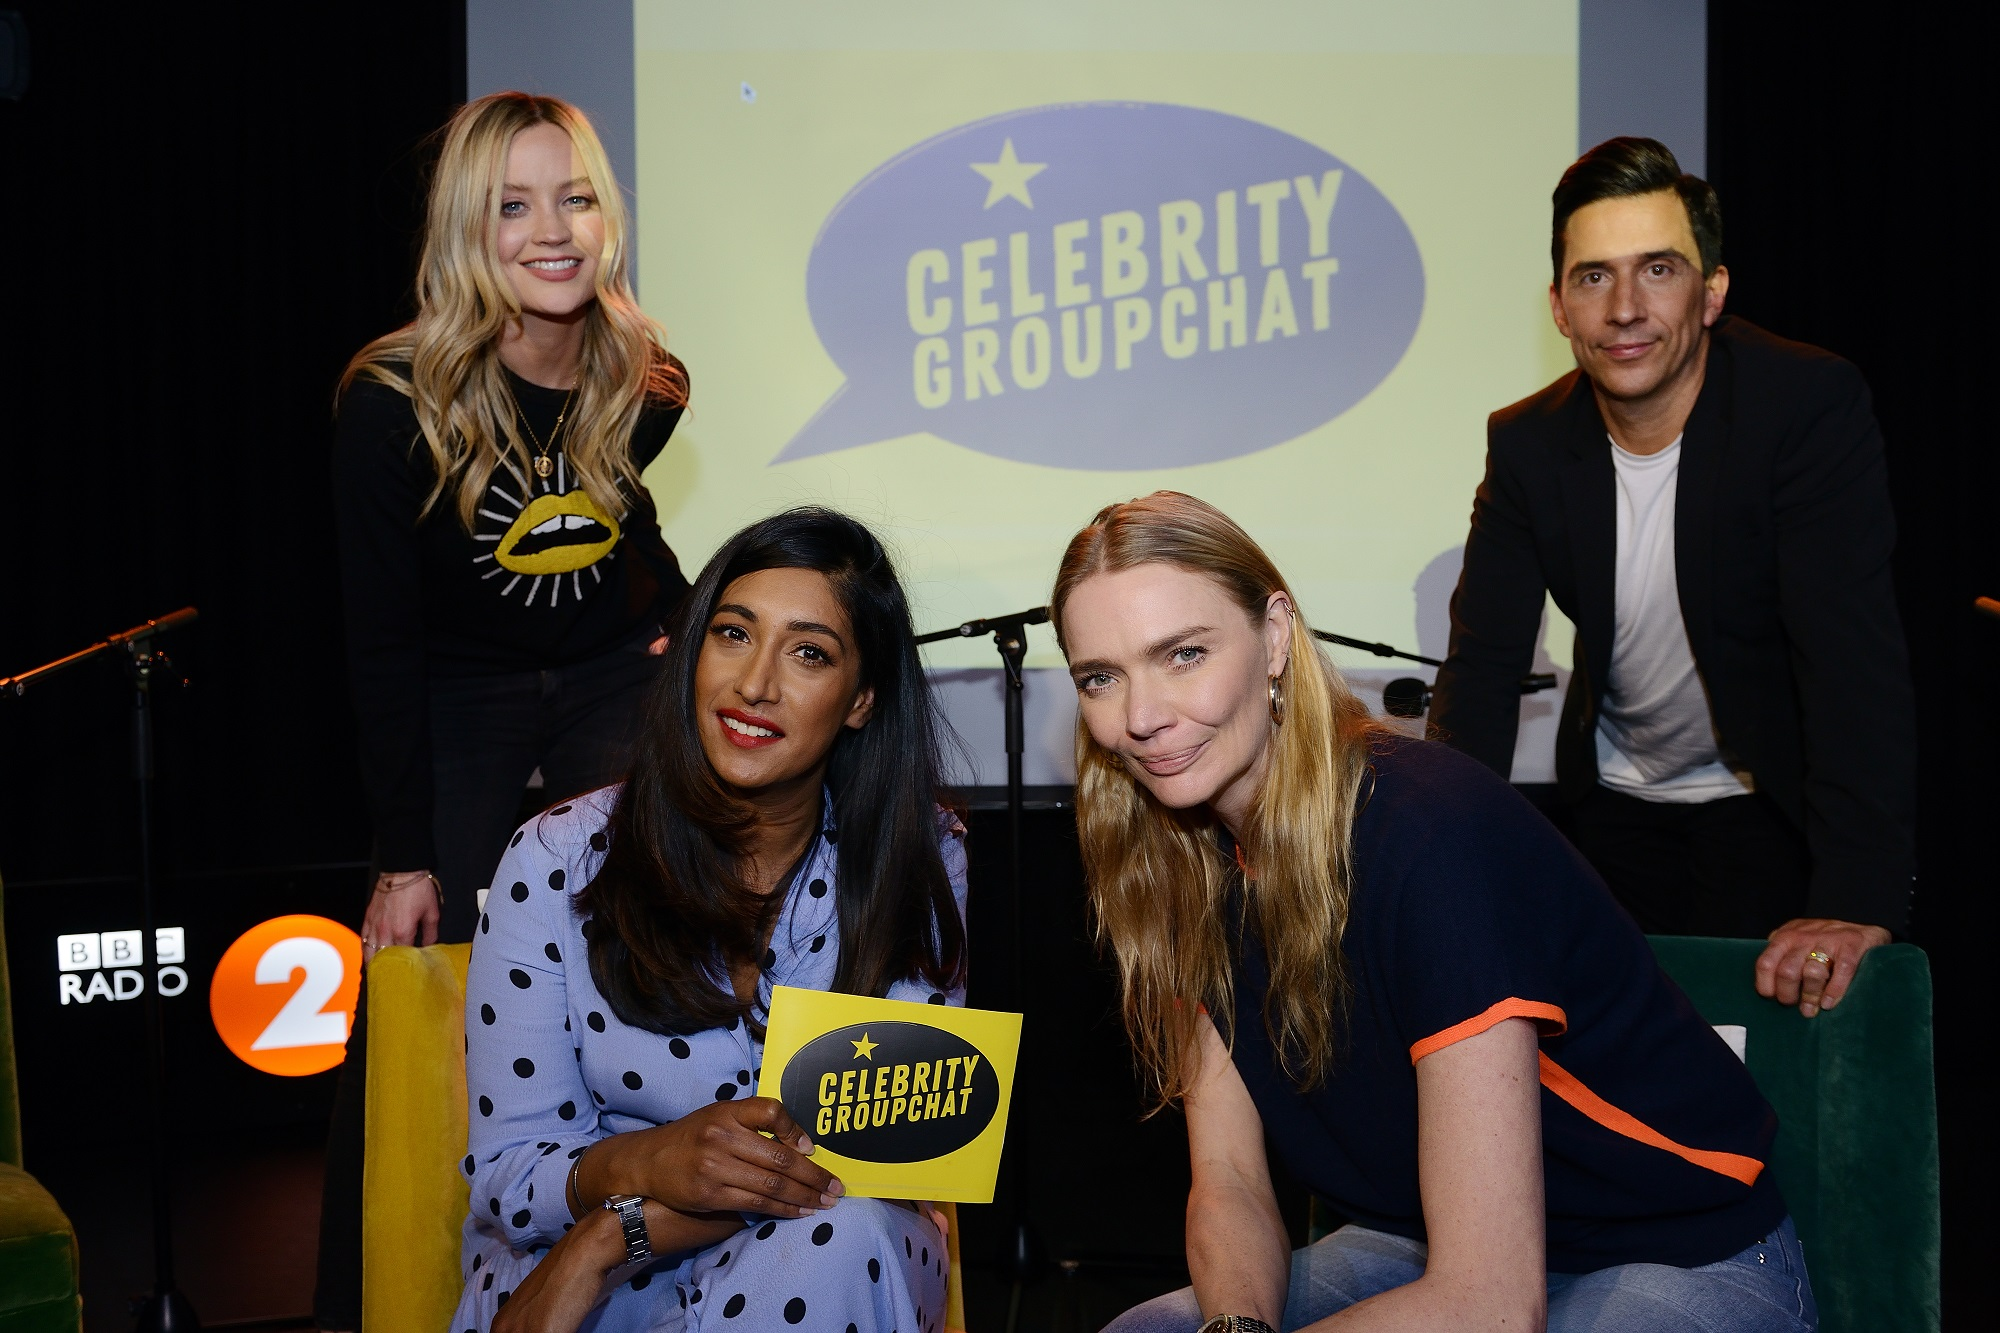 Celebrity Groupchat featuring Tina Daheley, Russell Kane, Jodie Kidd and Laura Whitmore